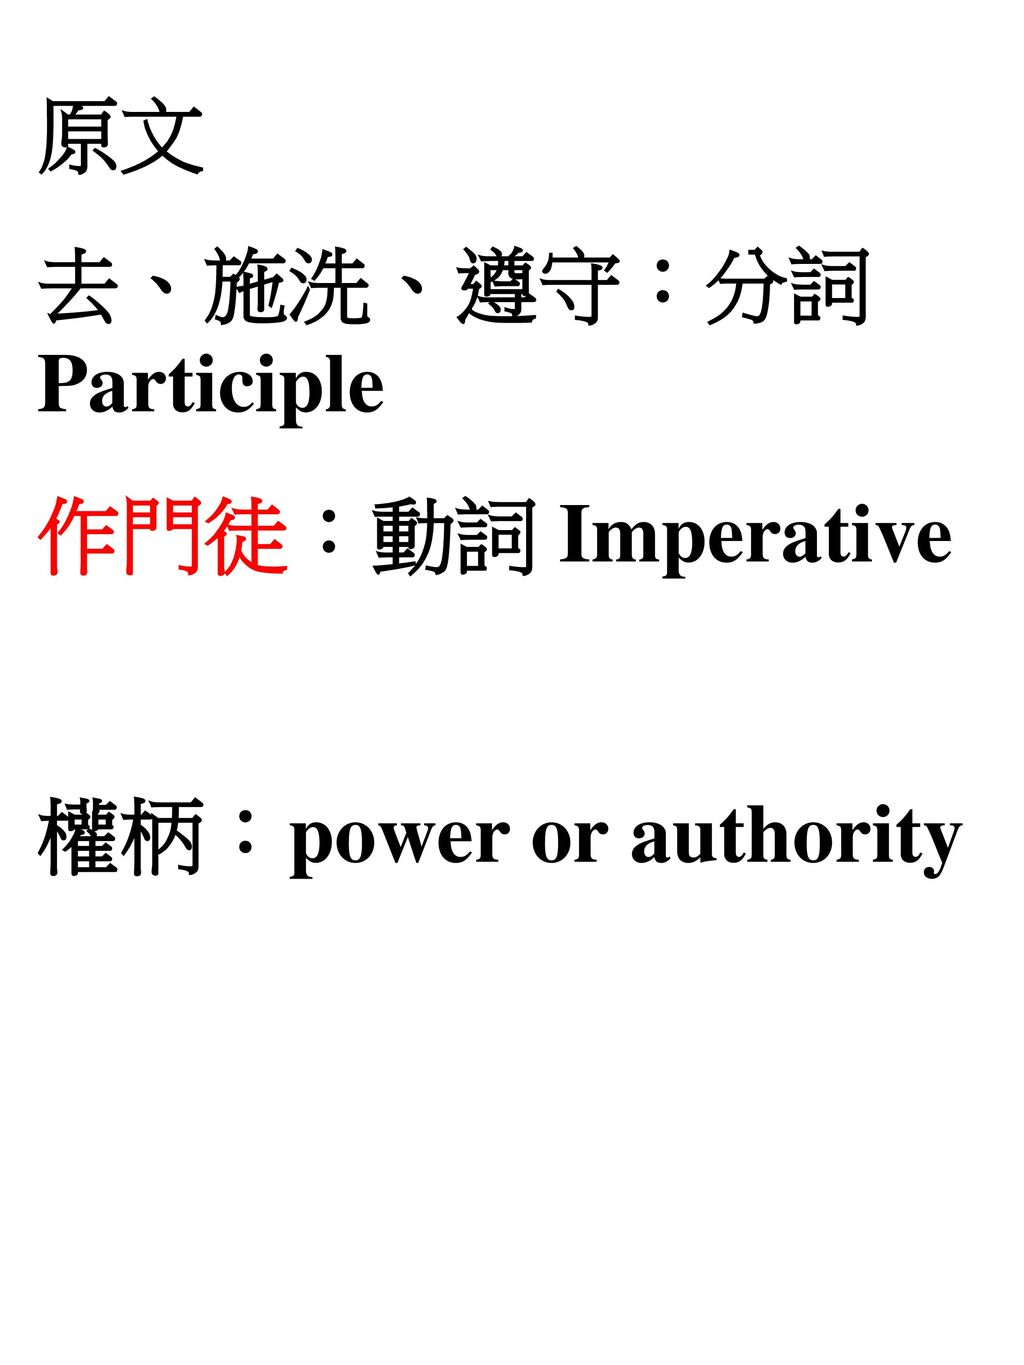 原文 去、施洗、遵守:分詞 Participle 作門徒:動詞 Imperative 權柄:power or authority